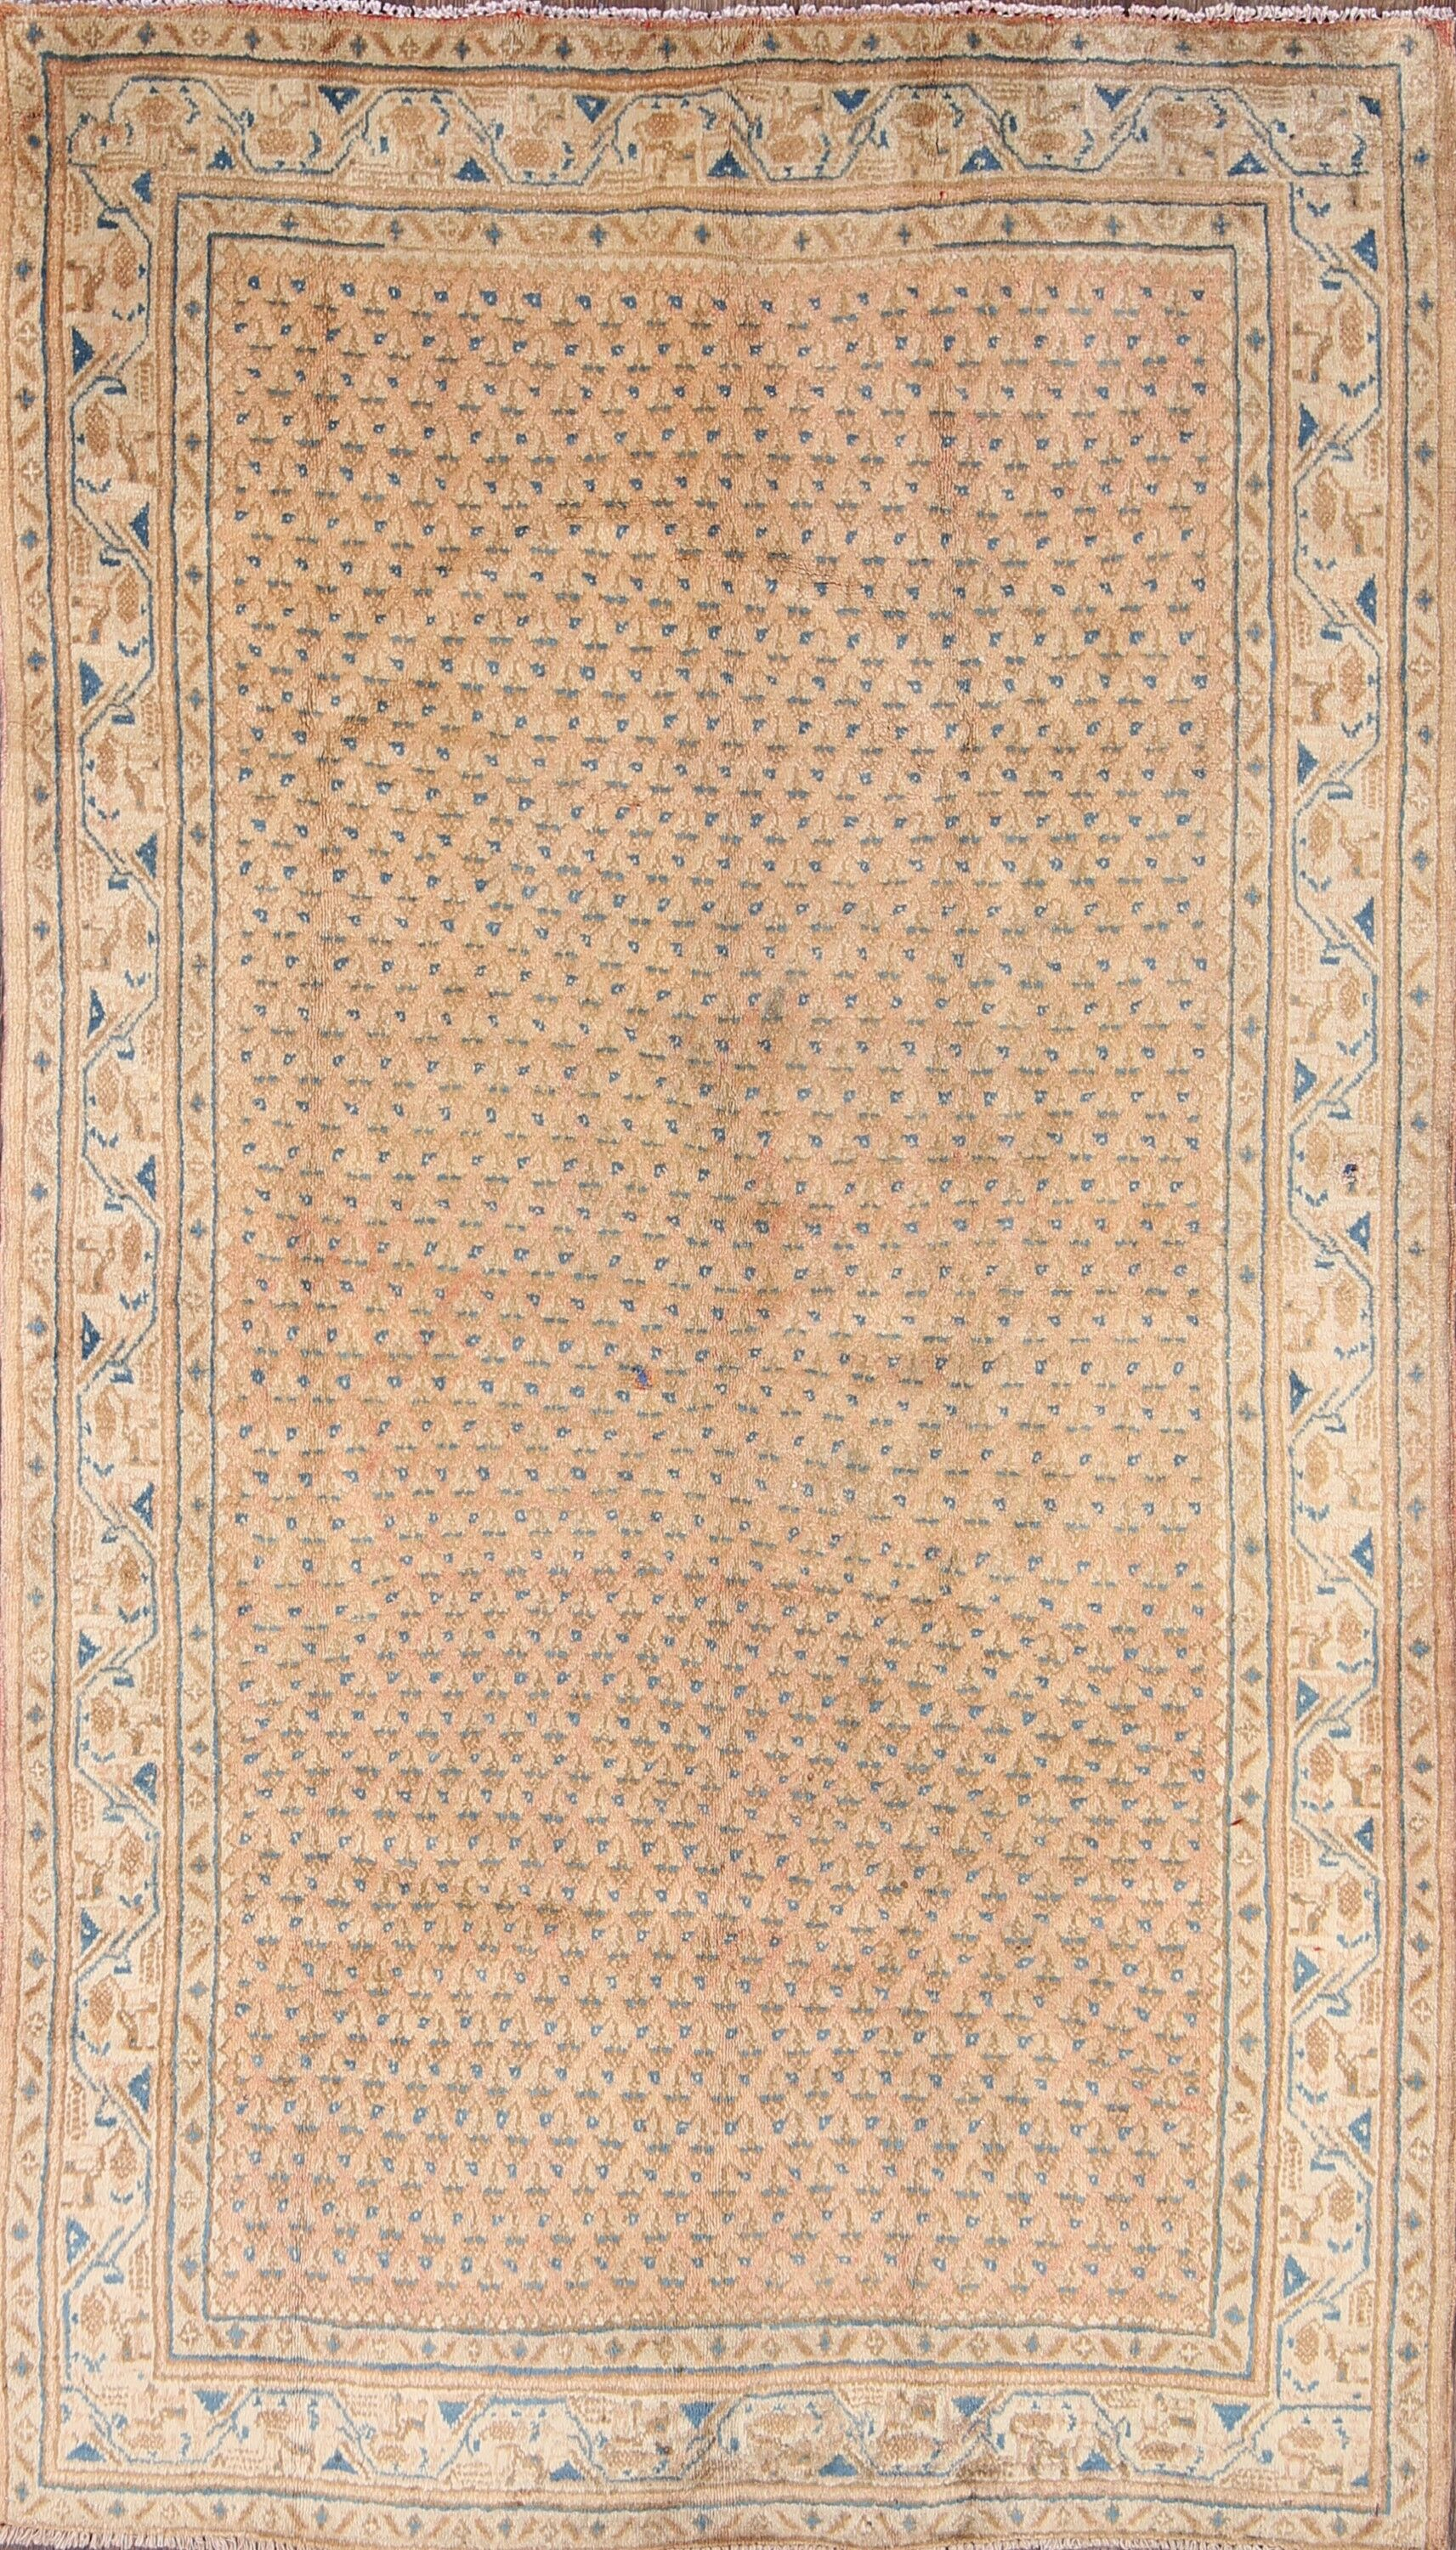 One-of-a-Kind Botemir Bote Traditional Persian Hand-Knotted 3'11